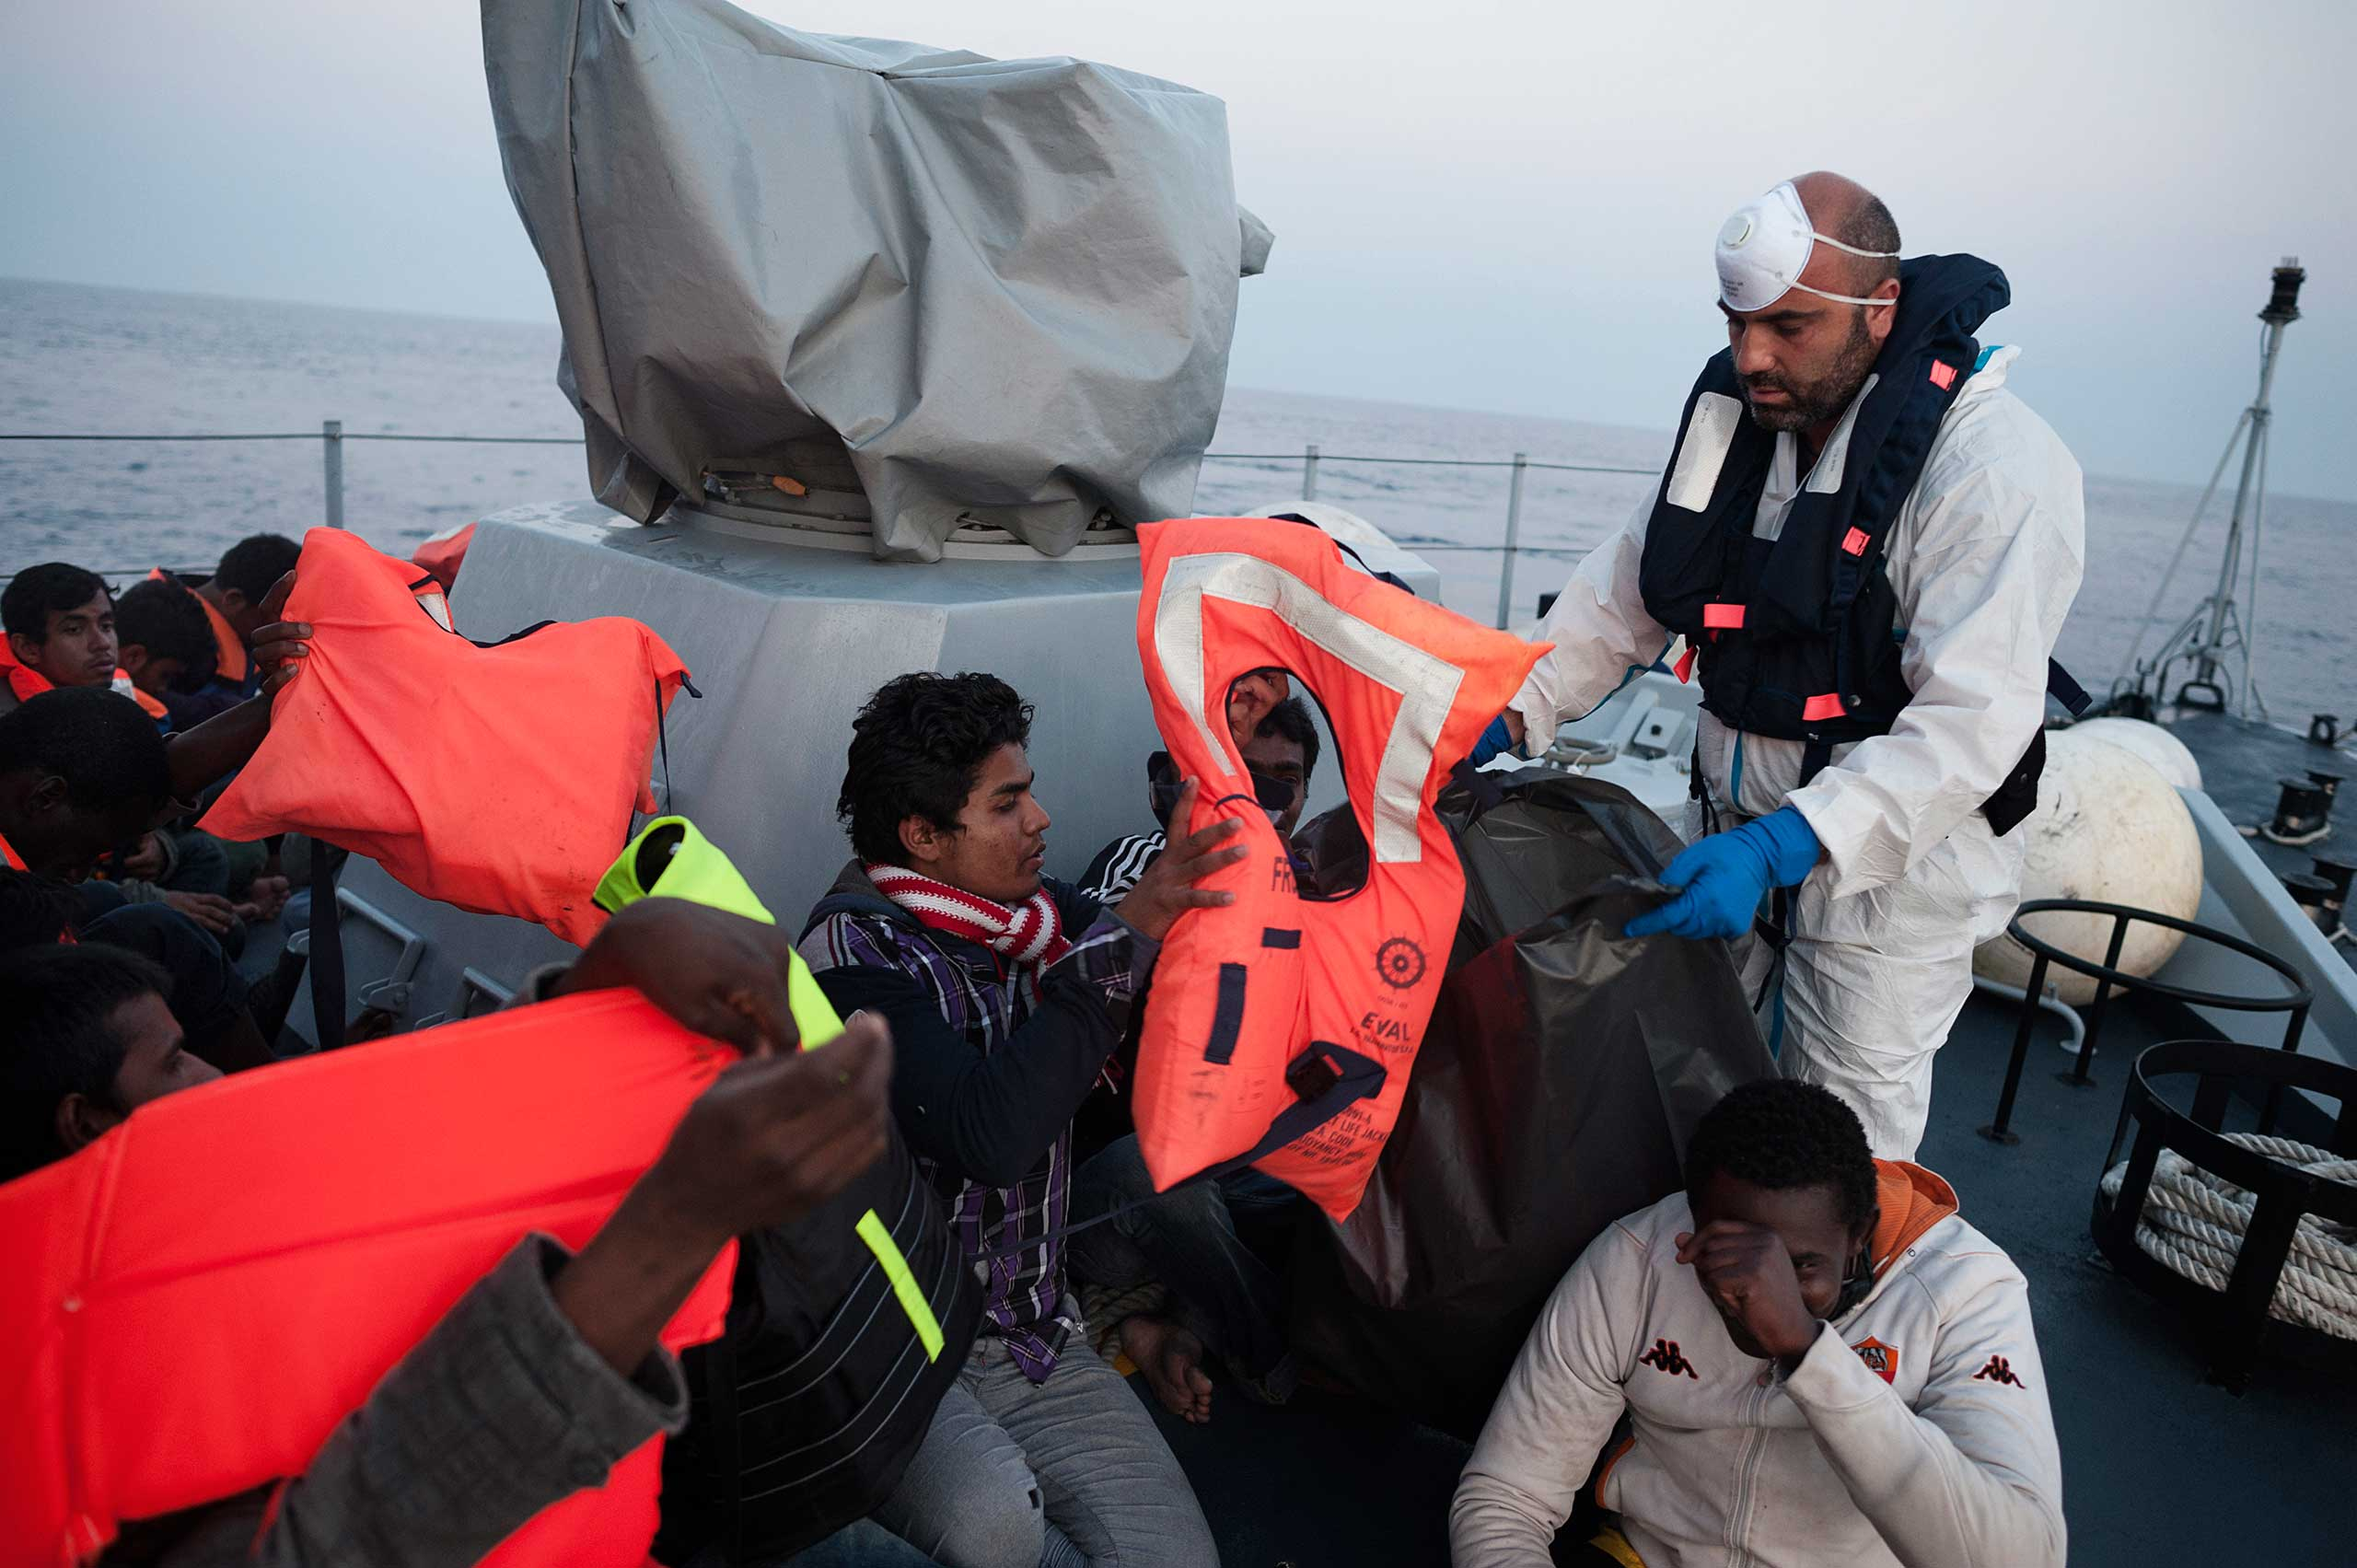 Immigrants from Bangladesh on a ship belonging to Italy's financial police after being rescued some 120 miles off the Italian coast on June 6, 2015.